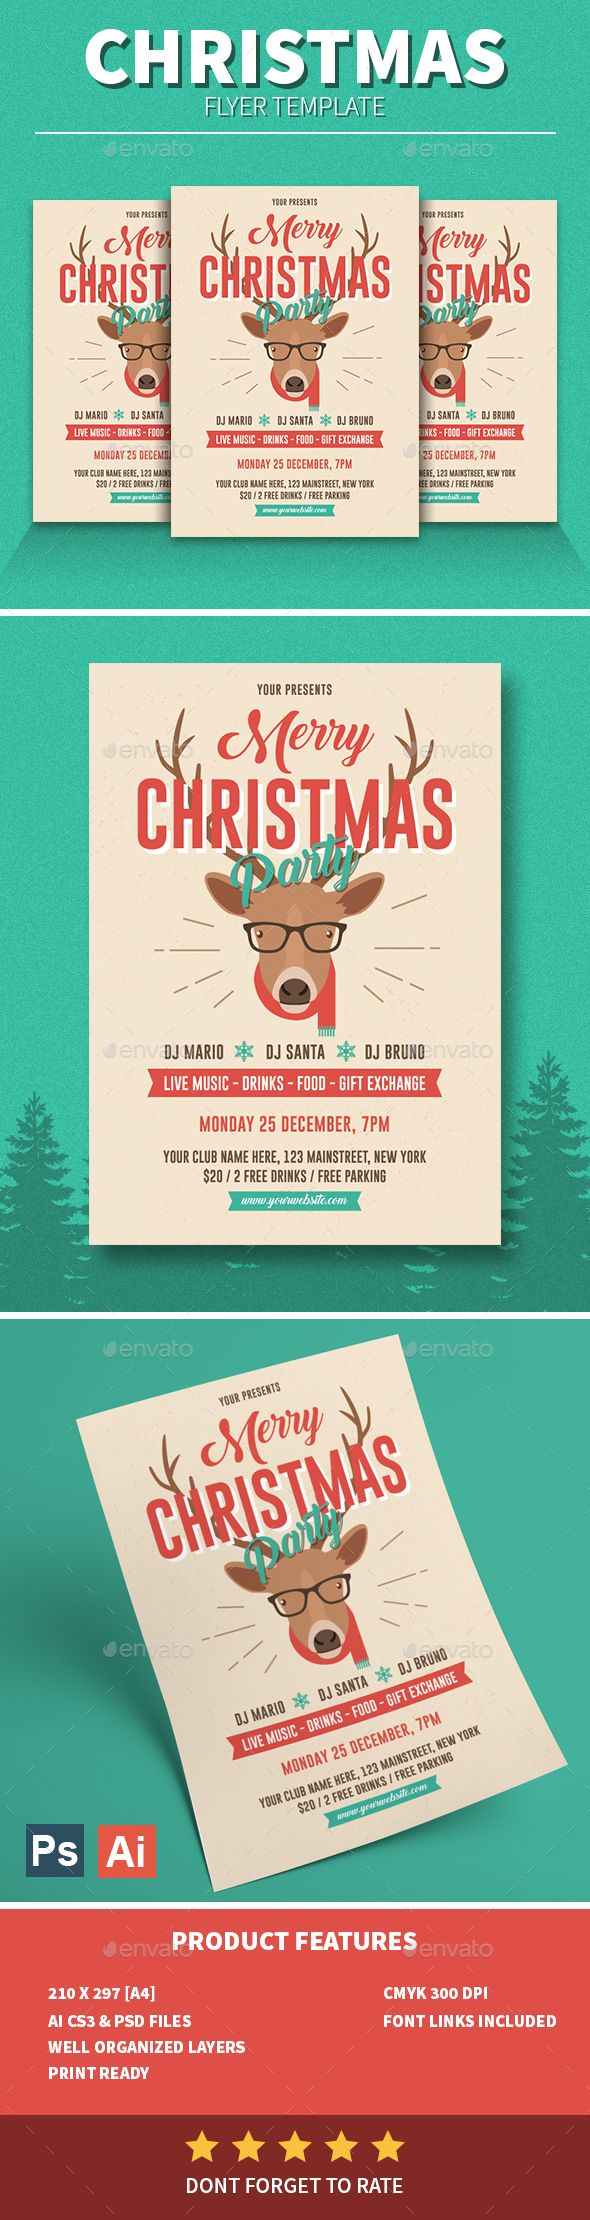 669 best #WebBanners/Posters/Flyers images on Pinterest | Banners ...